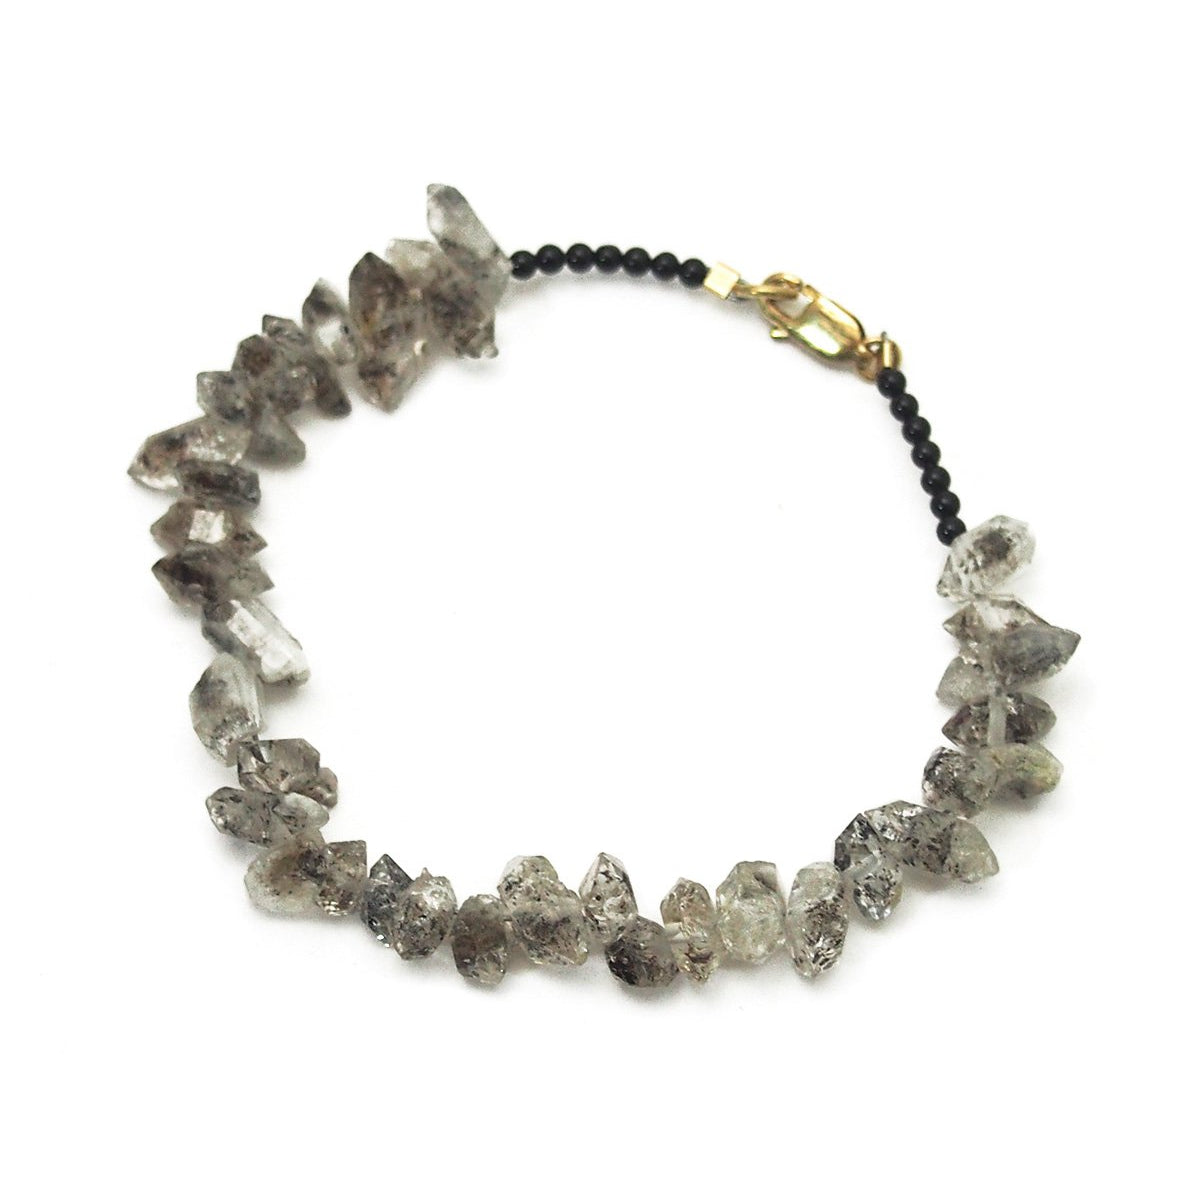 e6359db2f72 Herkimer Diamond Nuggets and Black Onyx Bracelet with Gold Filled Lobster  Claw Clasp